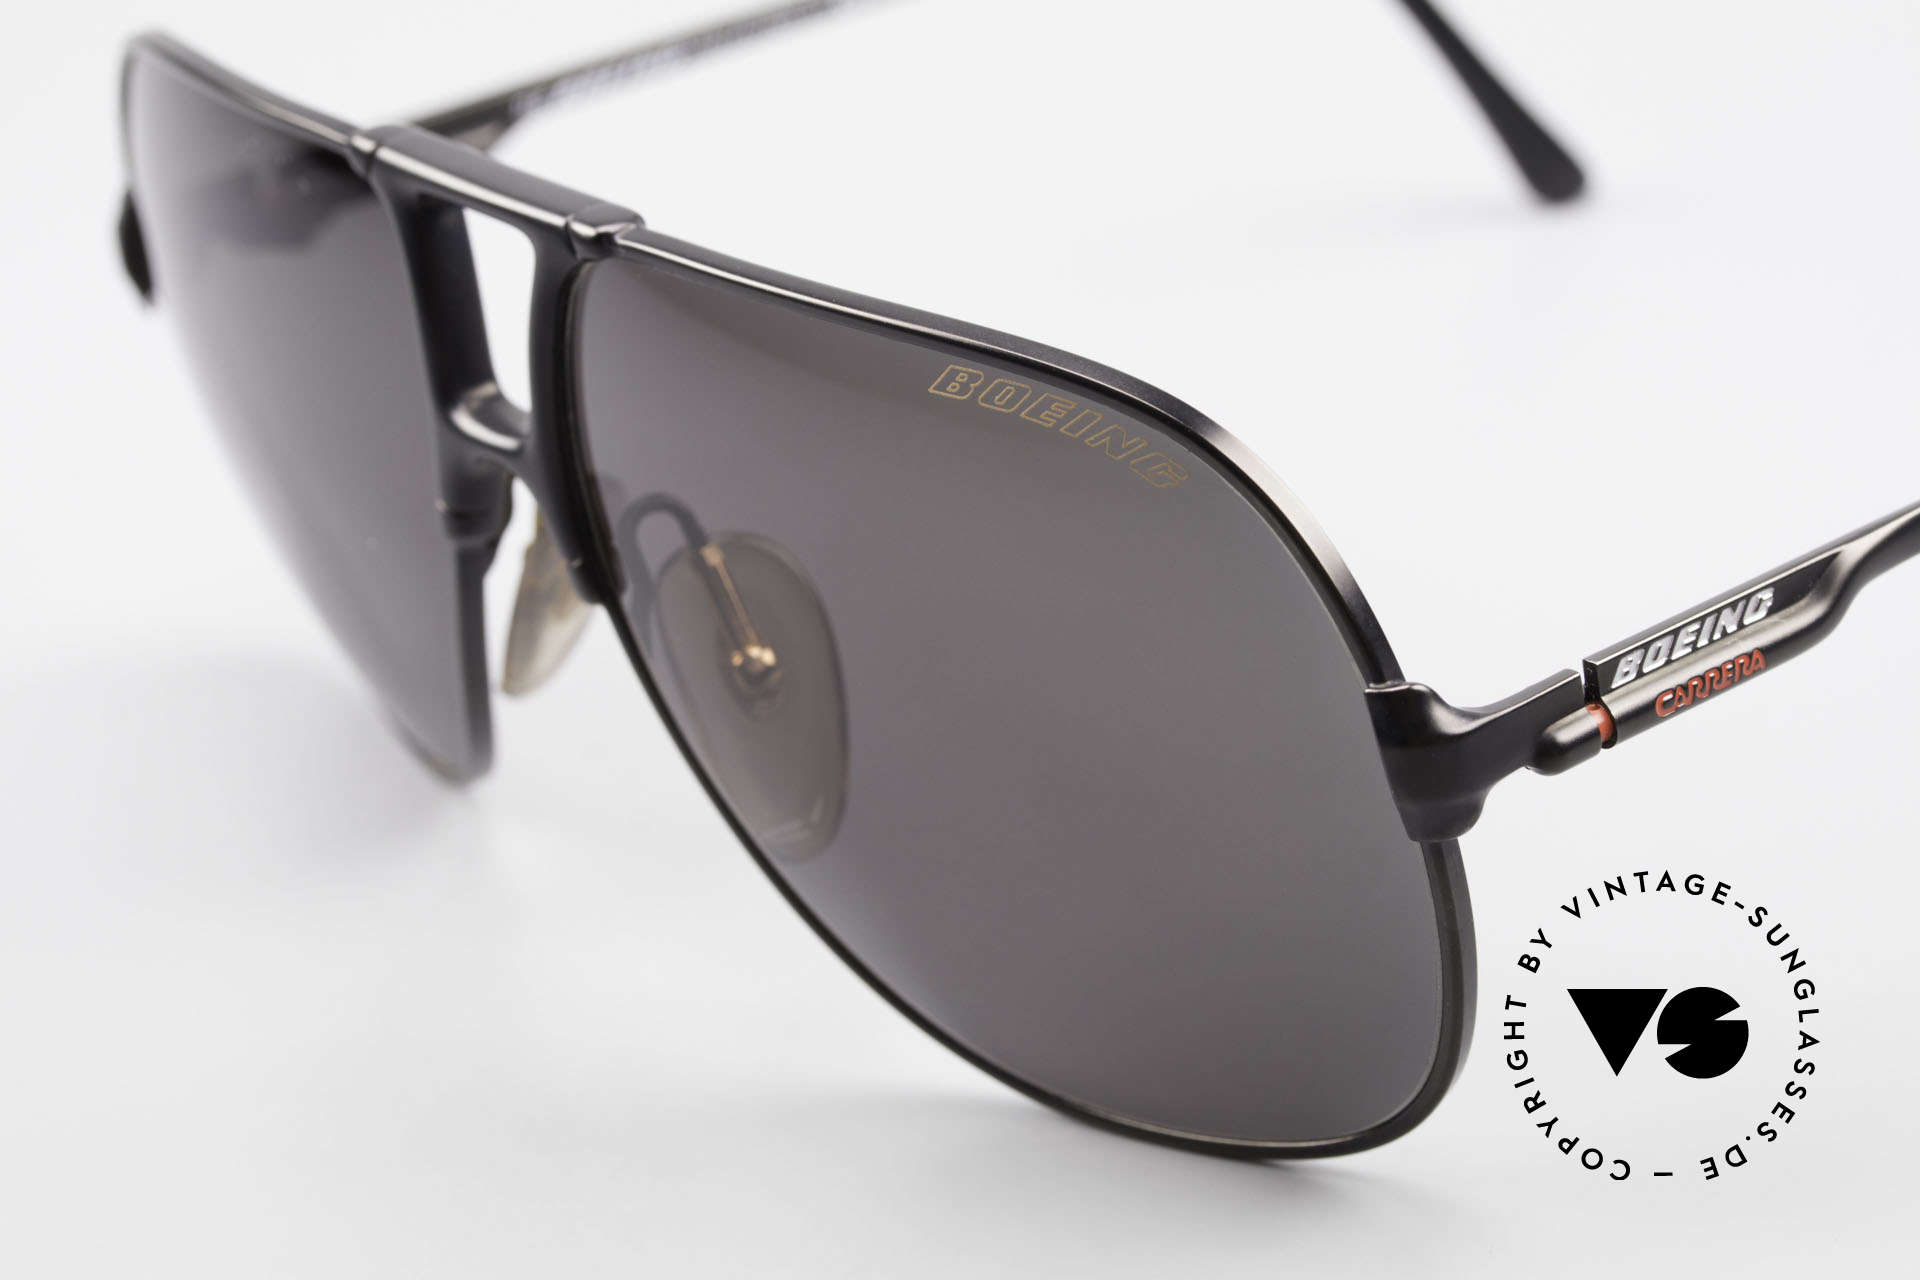 """Boeing 5700 Vintage 80's Pilots Shades, """"SMALL"""" 80's size (60/12) = a MEDIUM size, today, Made for Men and Women"""